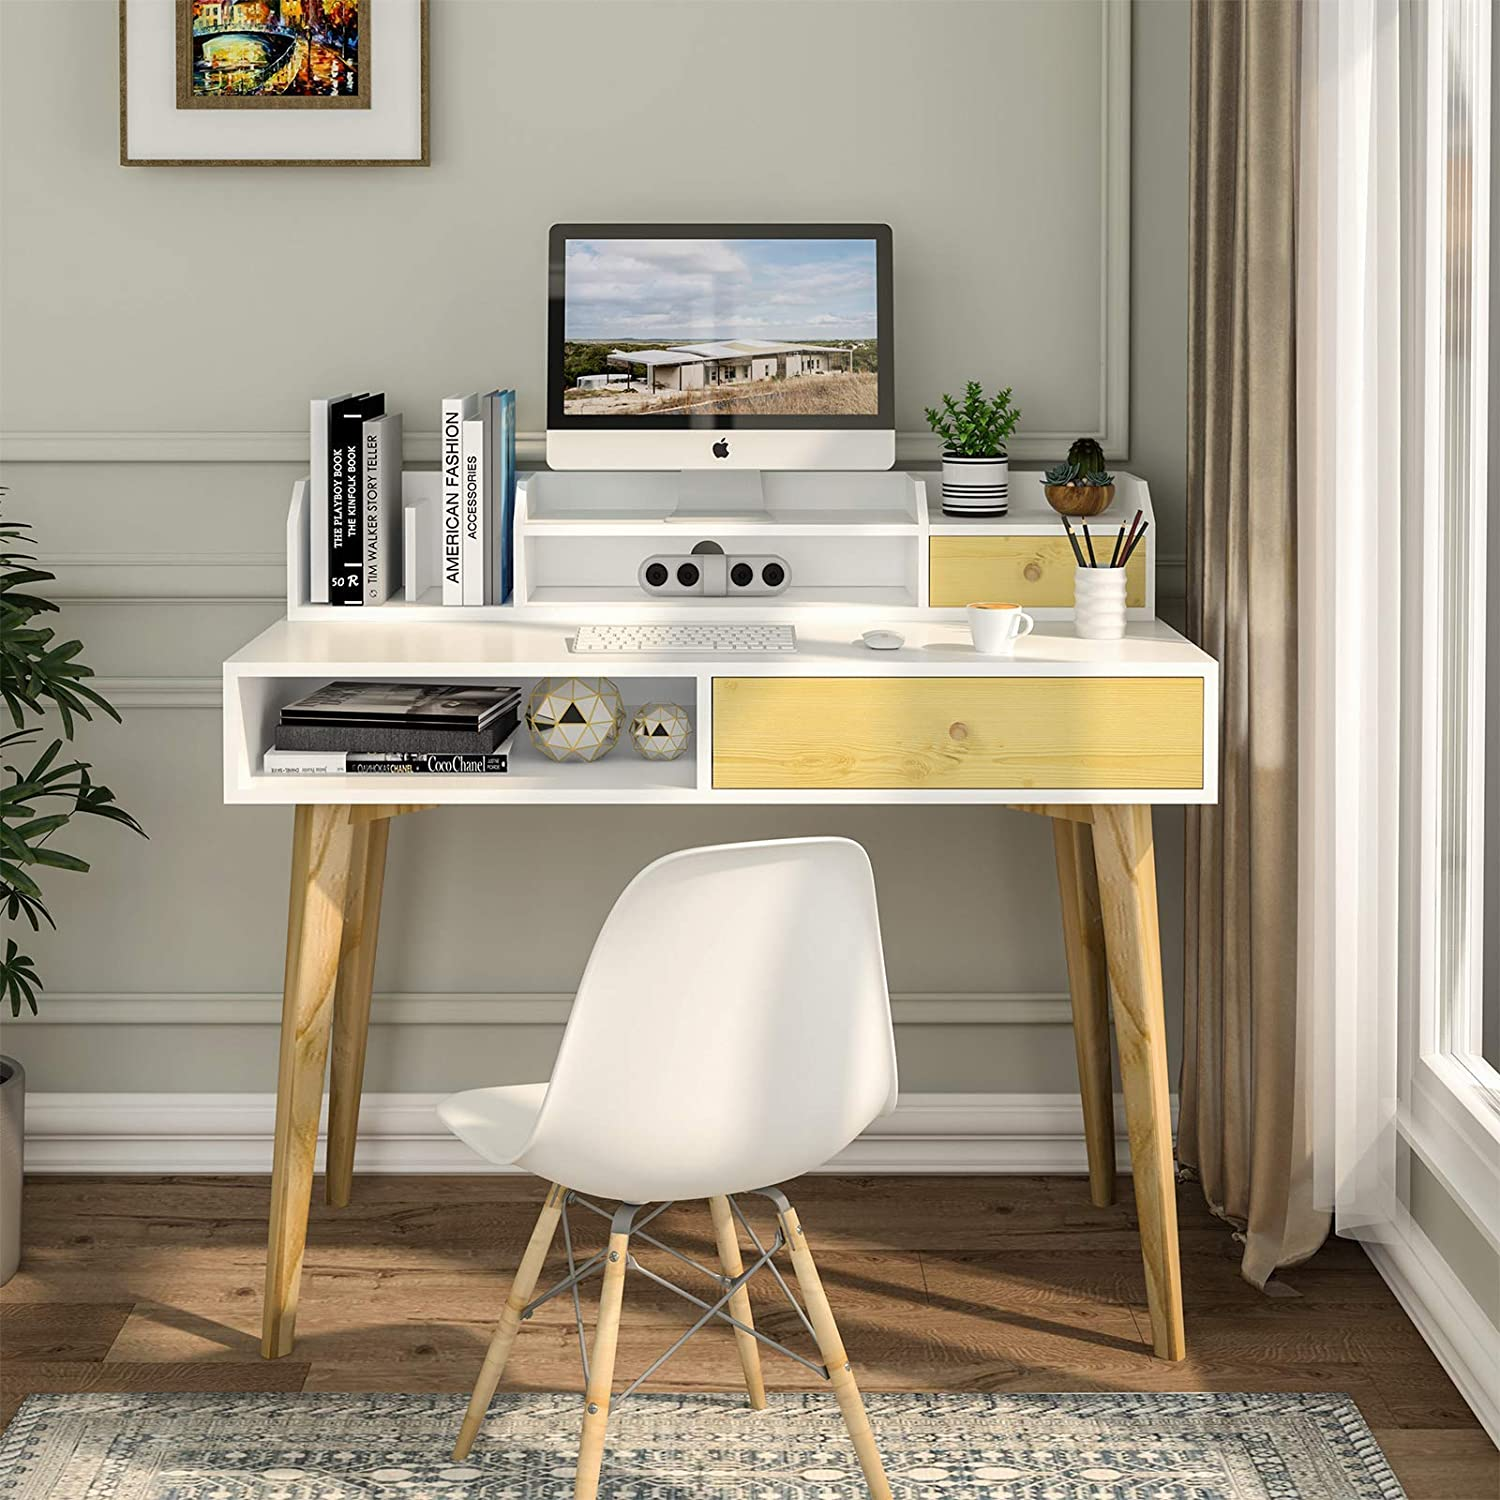 Itaar Writing Computer Desk with Drawers, Modern Work Study Table Desk with Storage Shelves & Solid Legs for Home Office, White